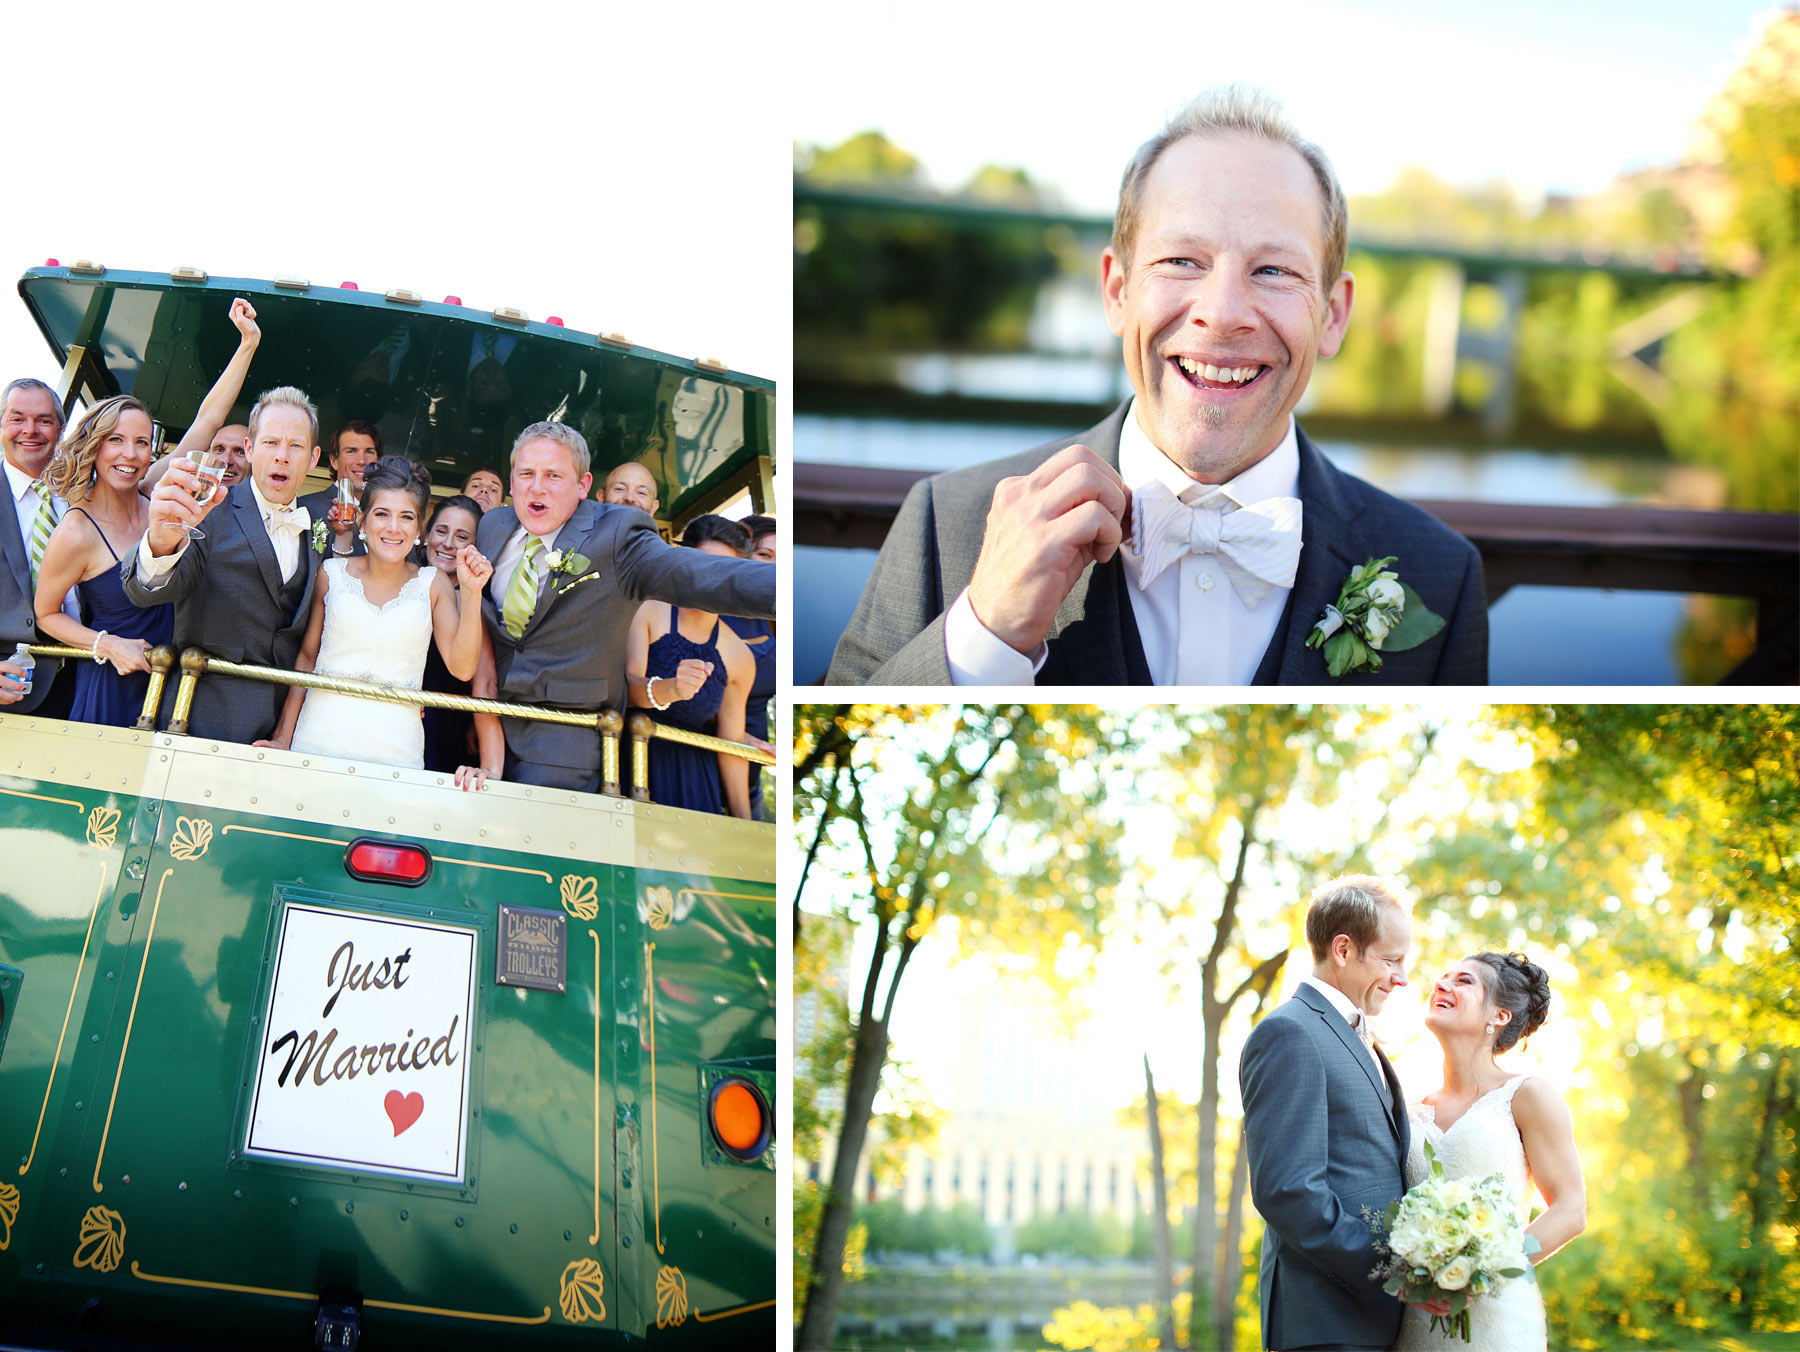 20-Minneapolis-Minnesota-Wedding-Photographer-by-Andrew-Vick-Photography-Fall-Autumn-Bride-Groom-Trolley-Celebration-Drinks-Bowtie-Paula-and-Jason.jpg